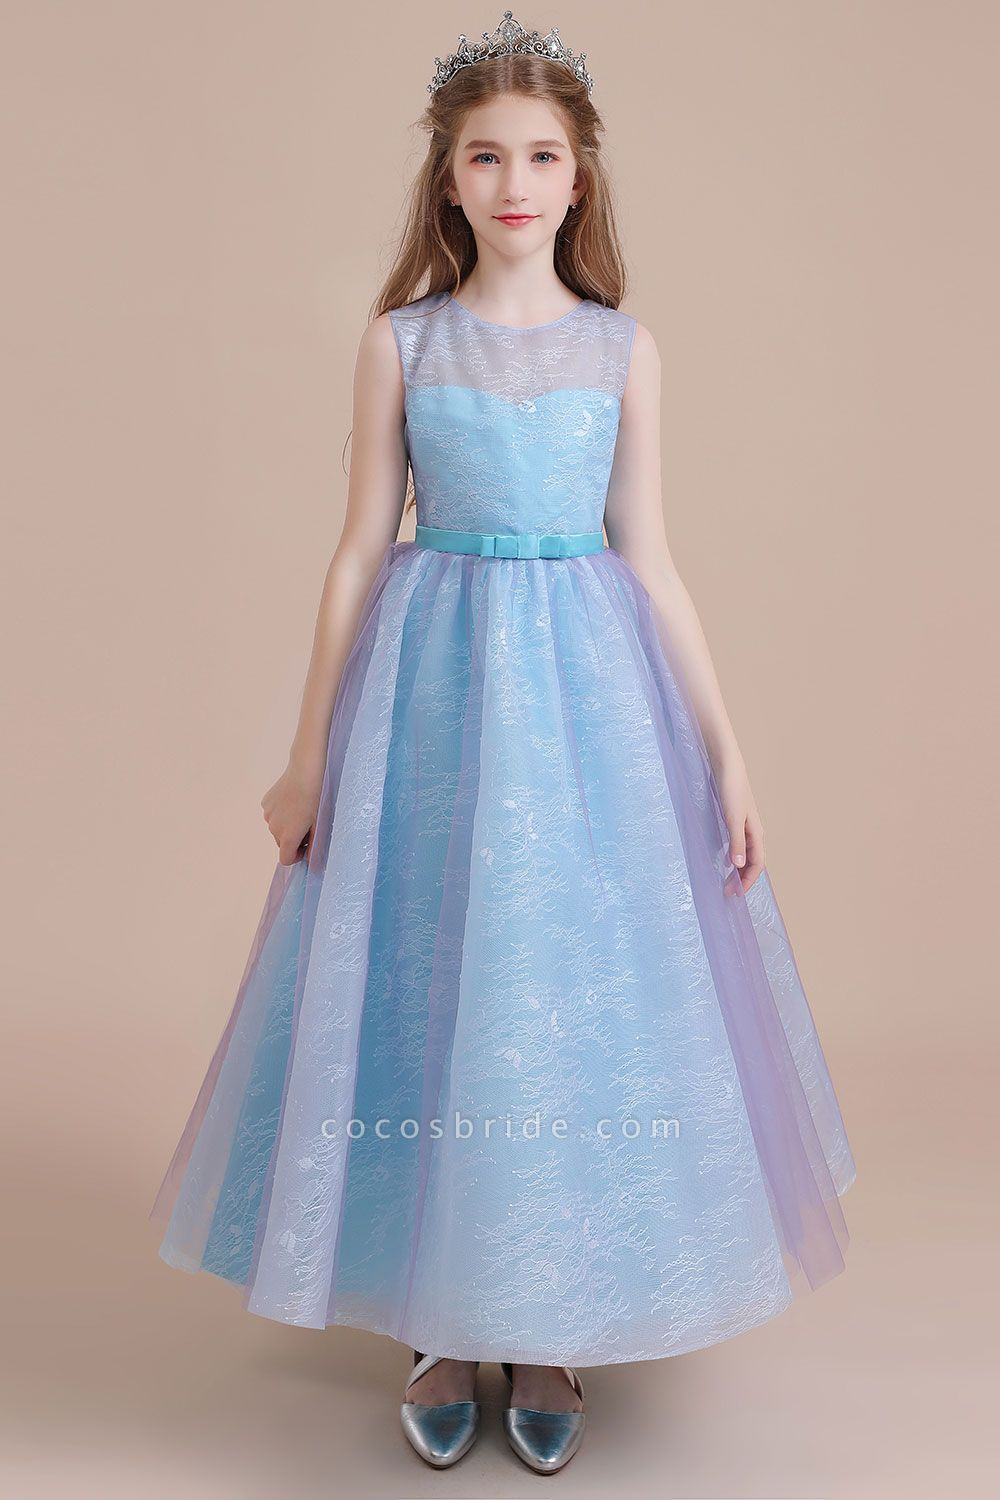 Illusion Lace Tulle A-line Flower Girl Dress